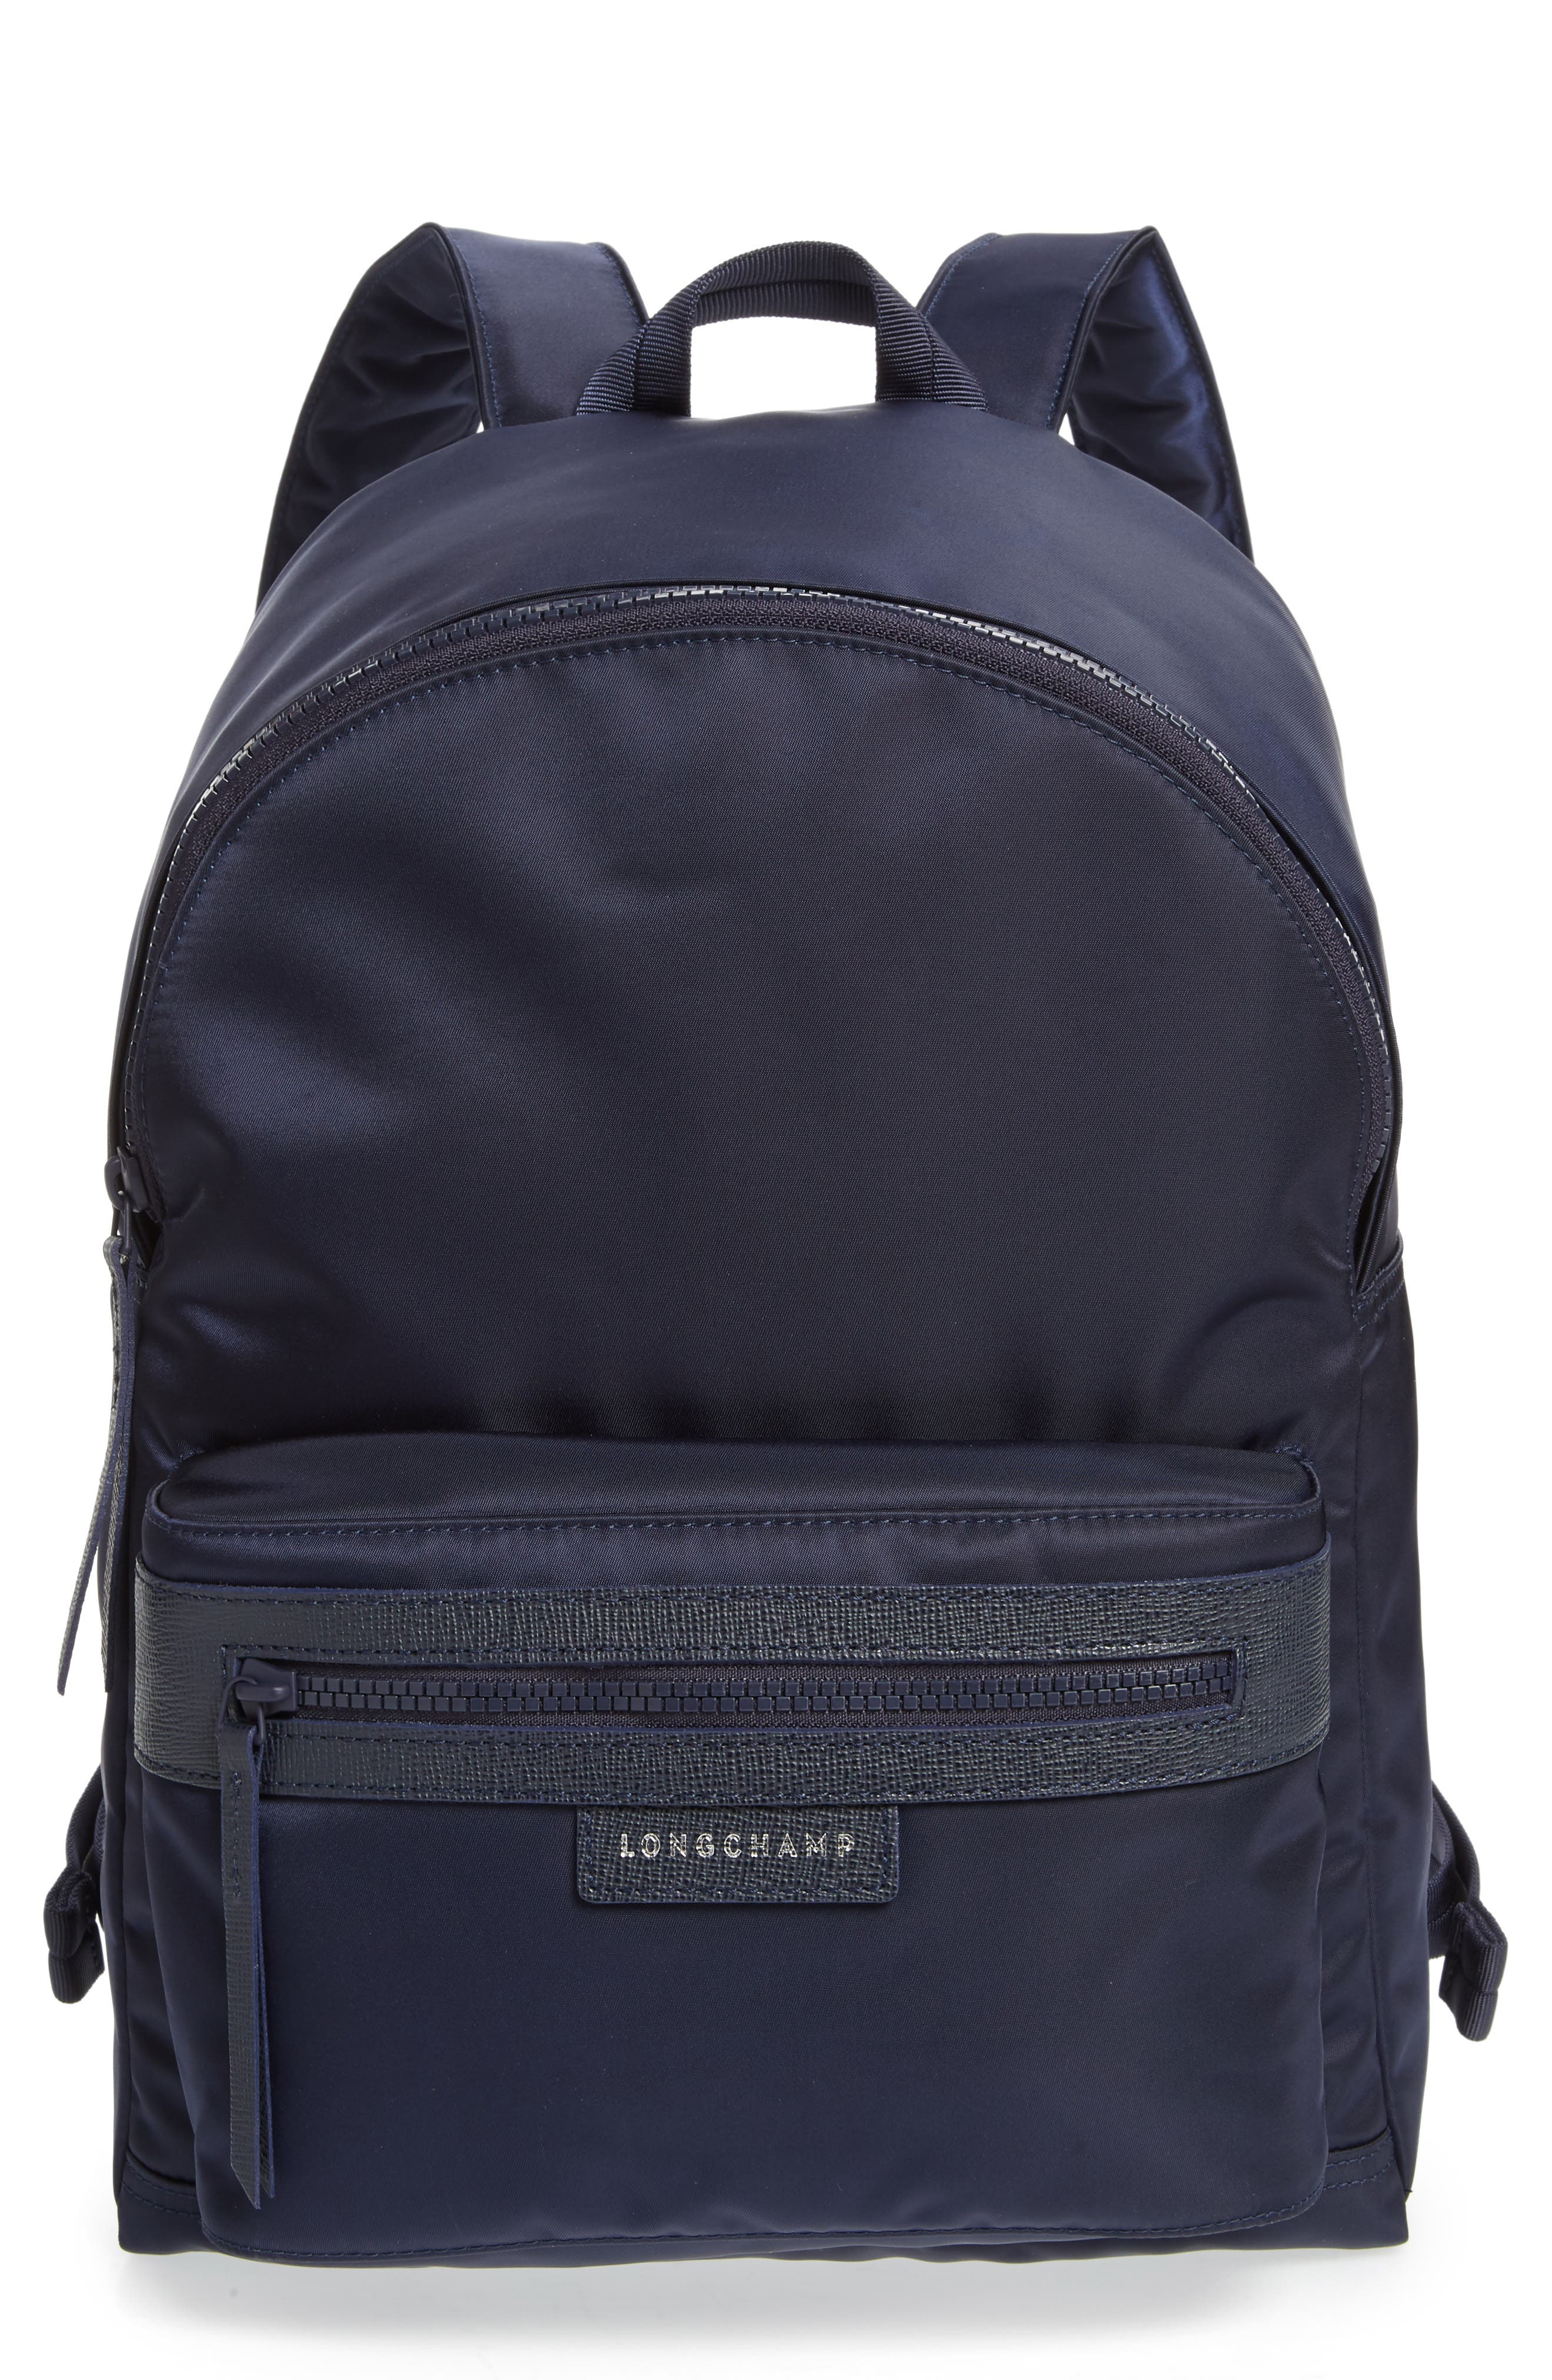 Longchamp \u0027Le Pliage Neo\u0027 Nylon Backpack